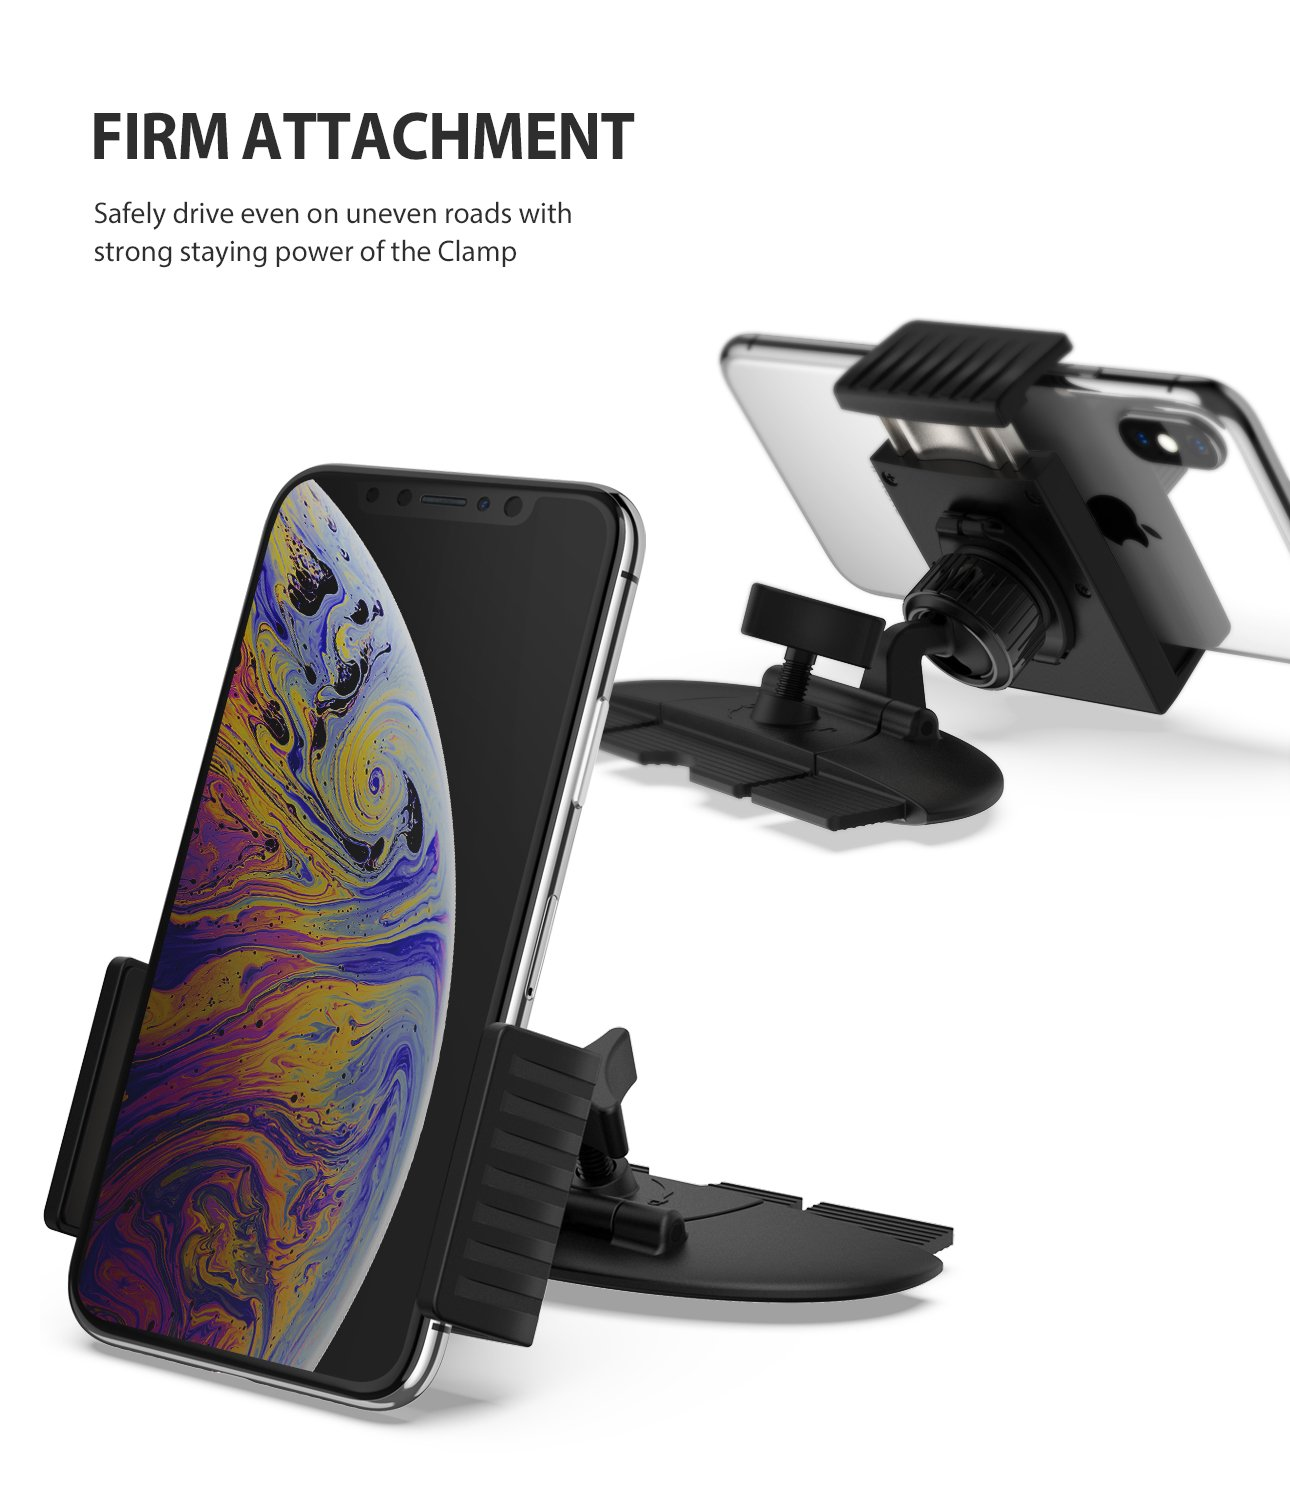 ringke cd slot 2 in 1 car mount firm attachment